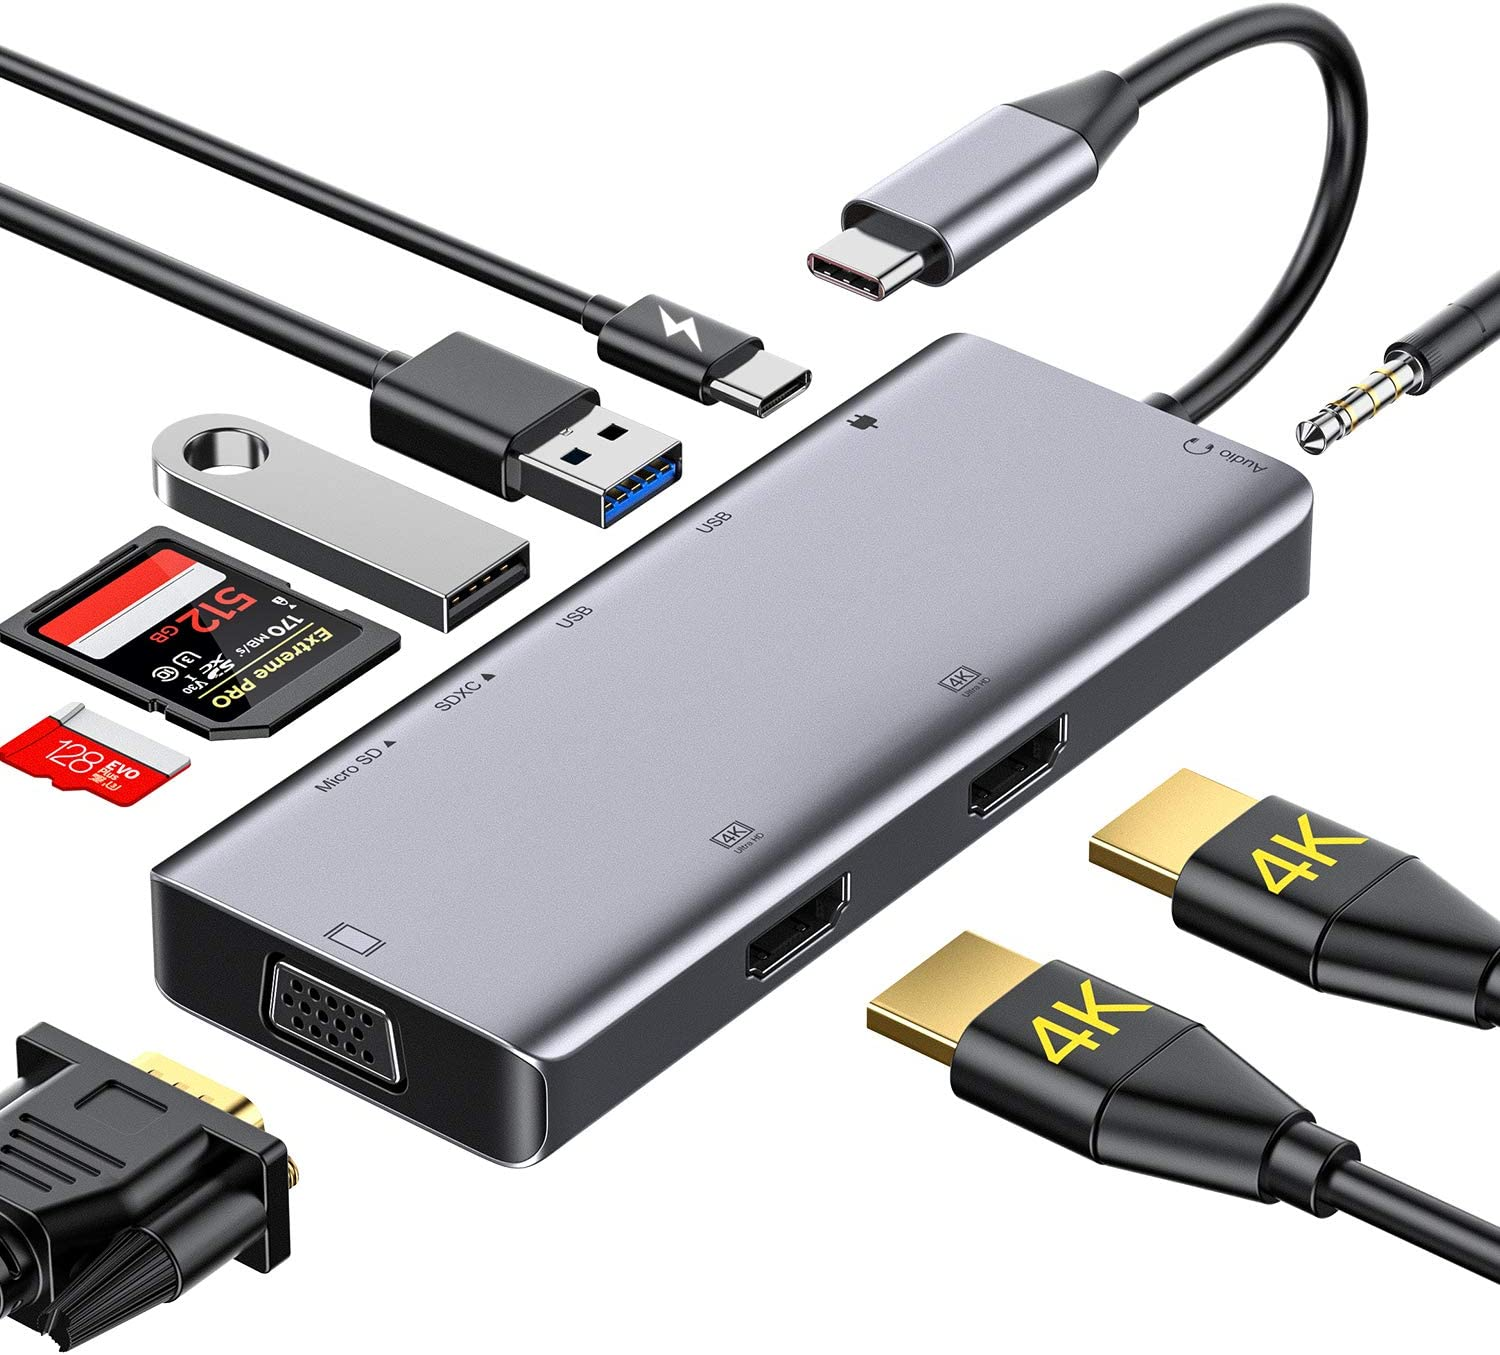 USB C Hub,GIKERSY USB Type C Adapter Docking Station Compatible with MacBook Pro,Dell XPS13 &15'',with 2 HDMI,VGA,USB3.0/2.0,87W PD,SD/TF Card Reader,Audio Output(Different Displays Only for Windows)